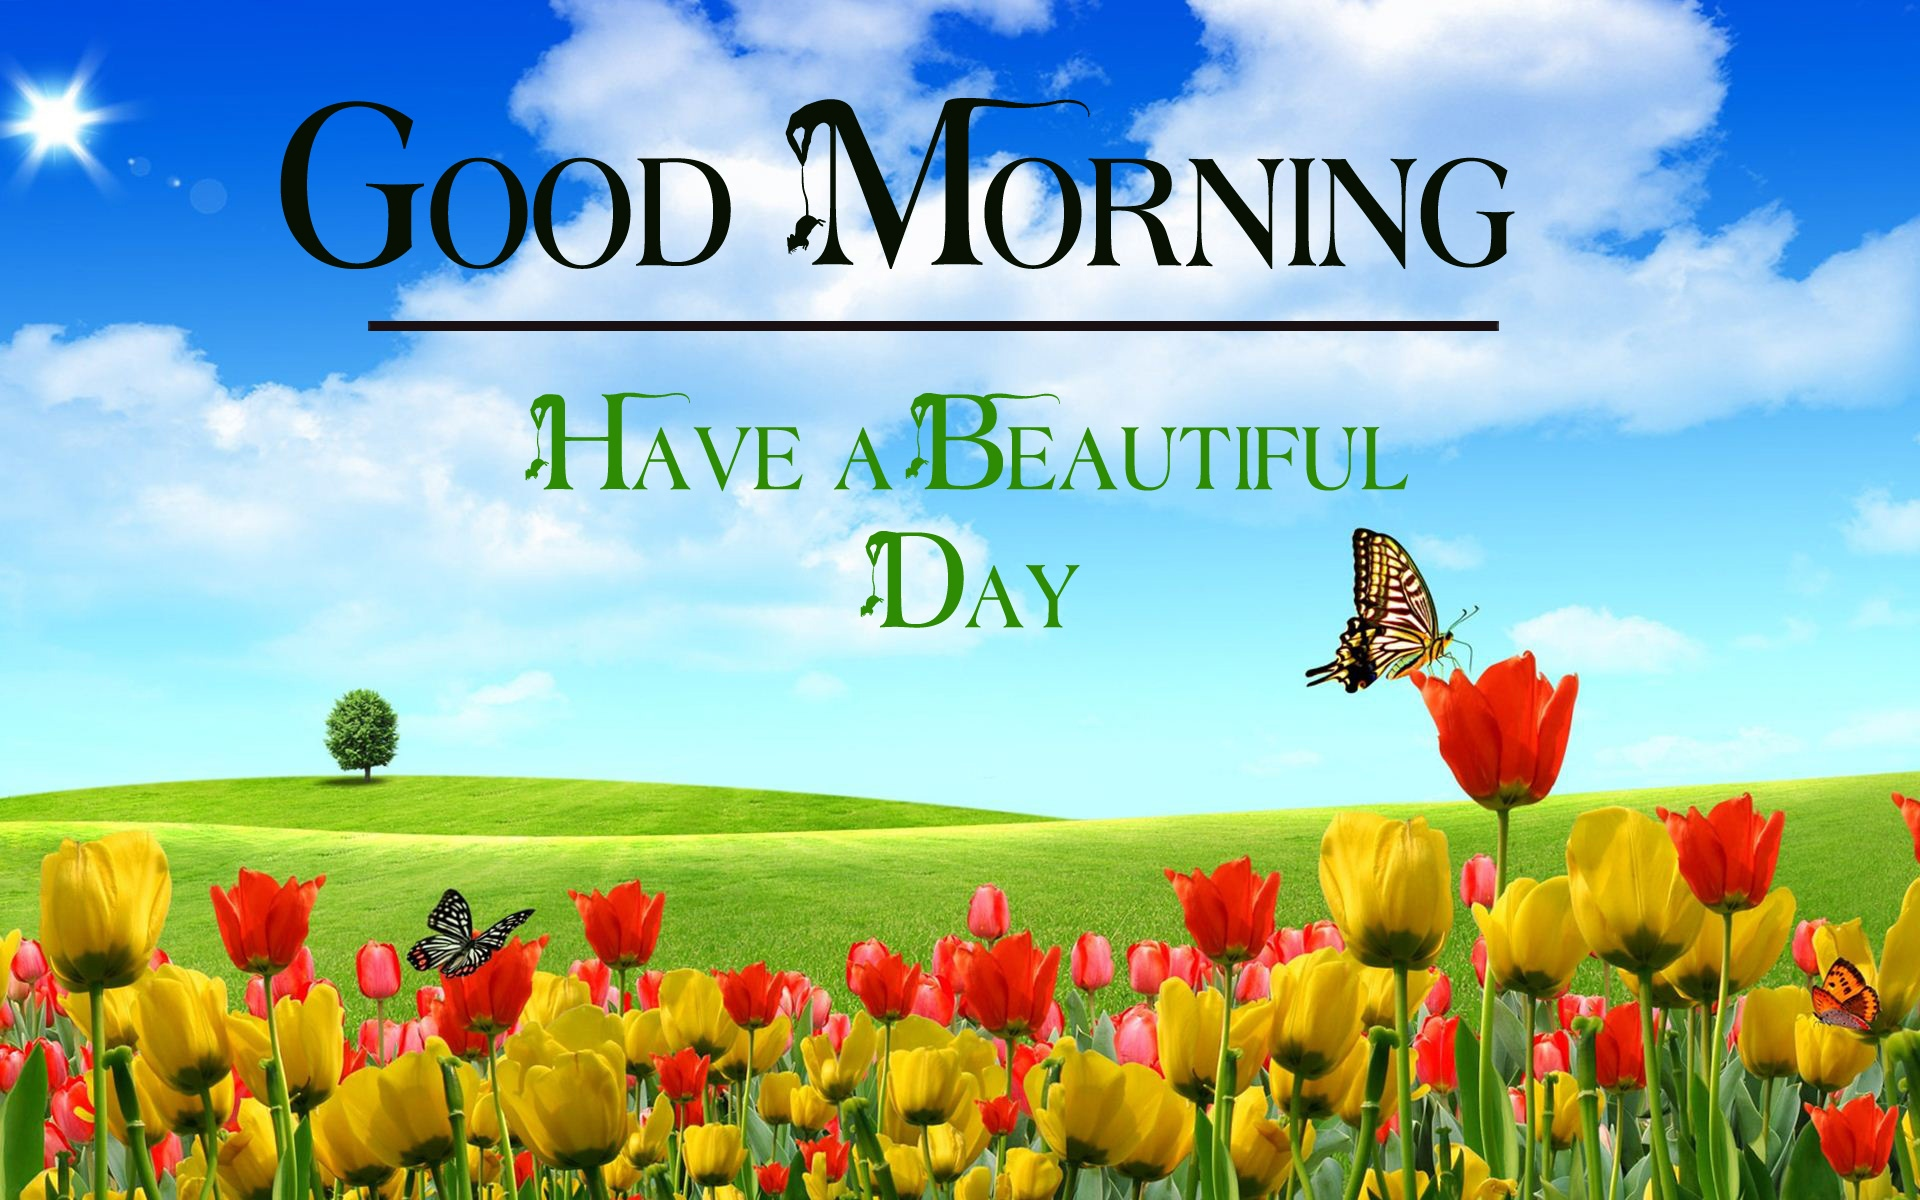 good morning images photo hd 2